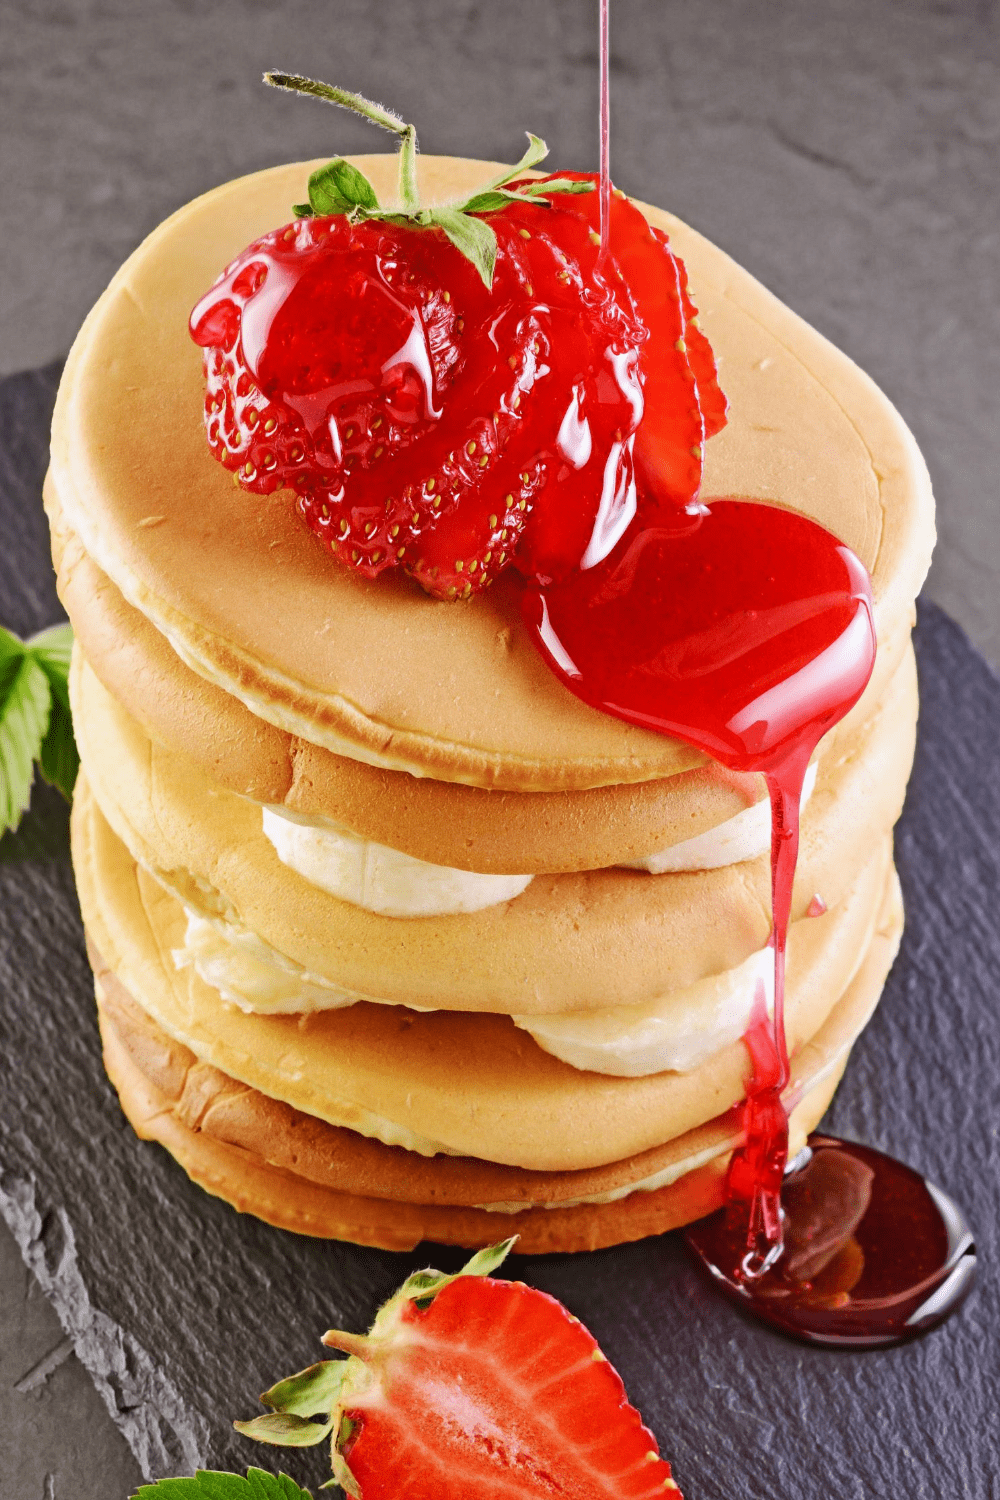 What to Serve with Pancakes